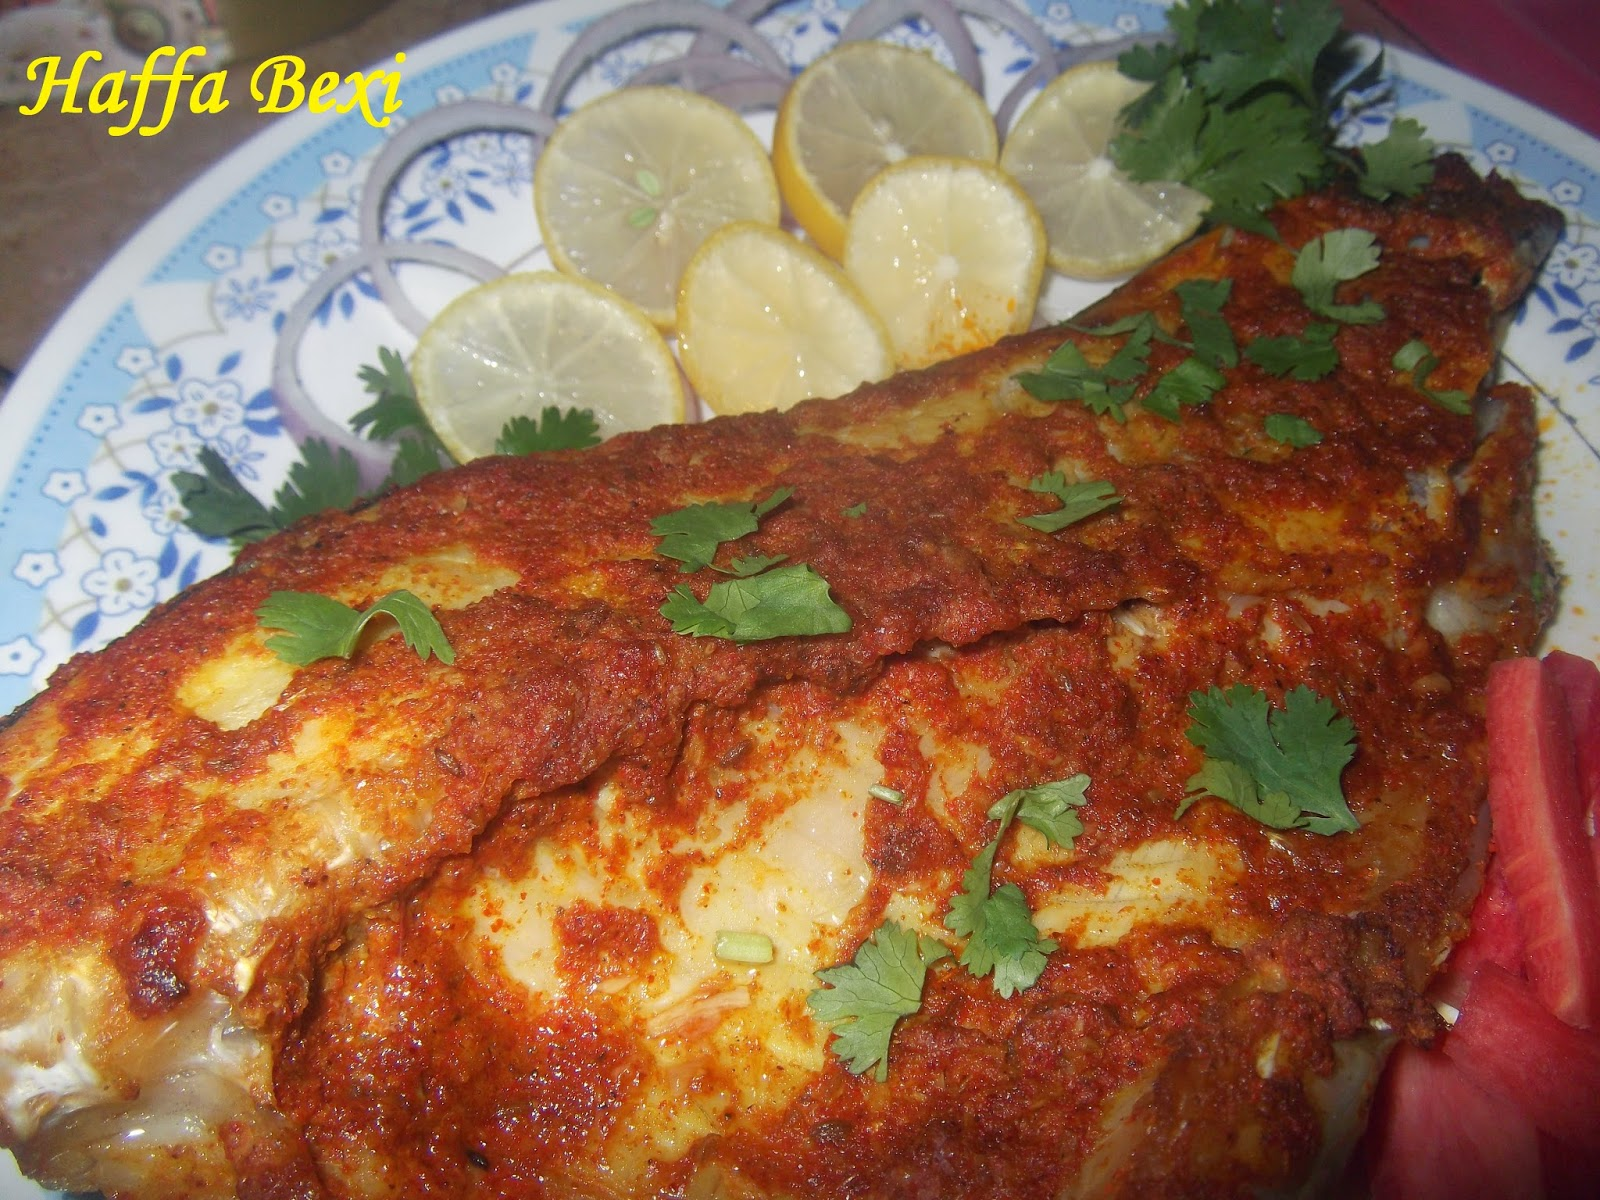 Diet recipes, weight loss recipes, Fish, baked fish, Fish recipes, baked fish recipes; baked fish recipe; bake fish recipe; baked whole fish, how to bake fish, bake fish, baking fish